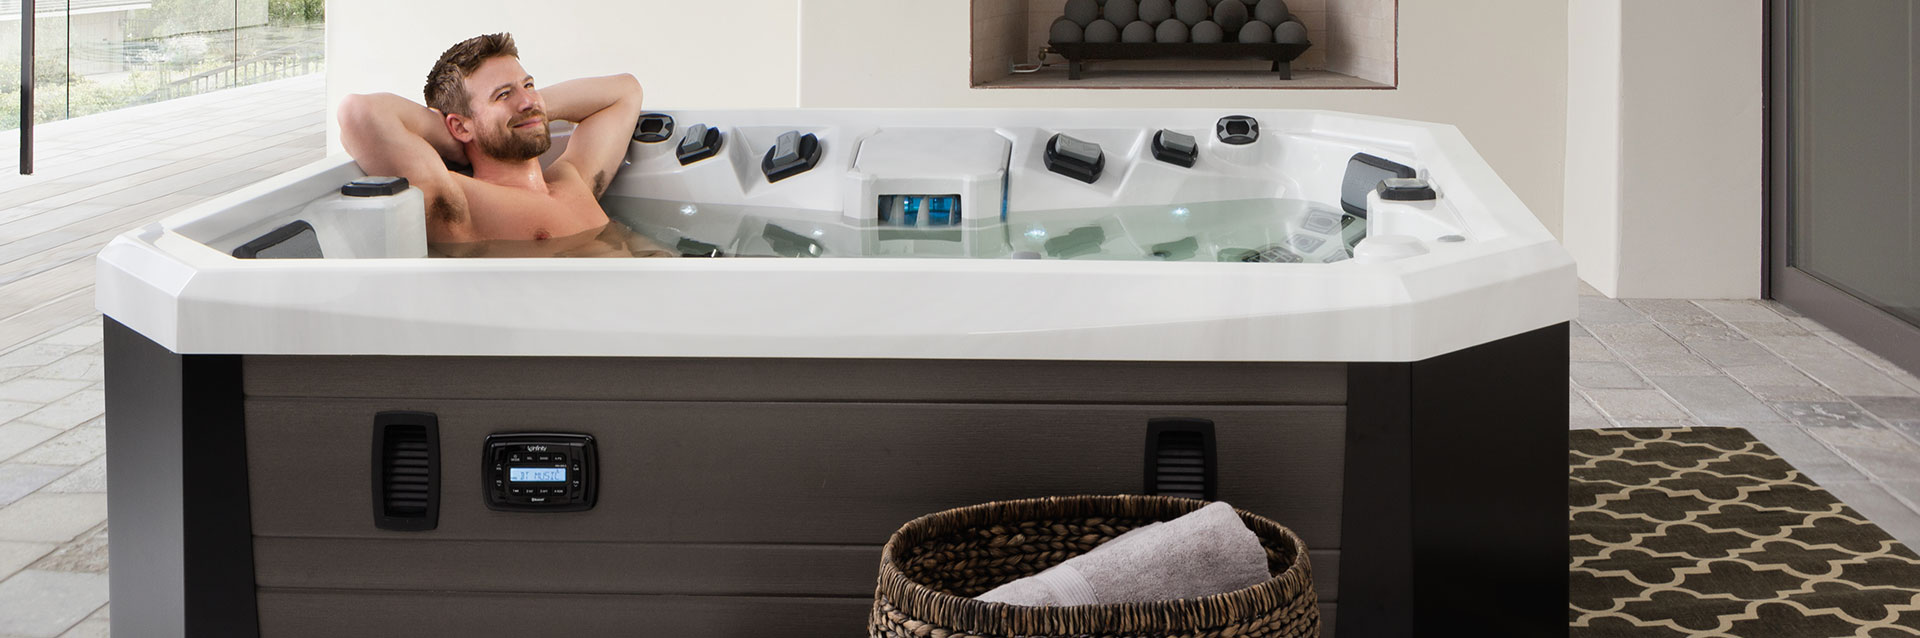 v65 hot tub in New Jersey